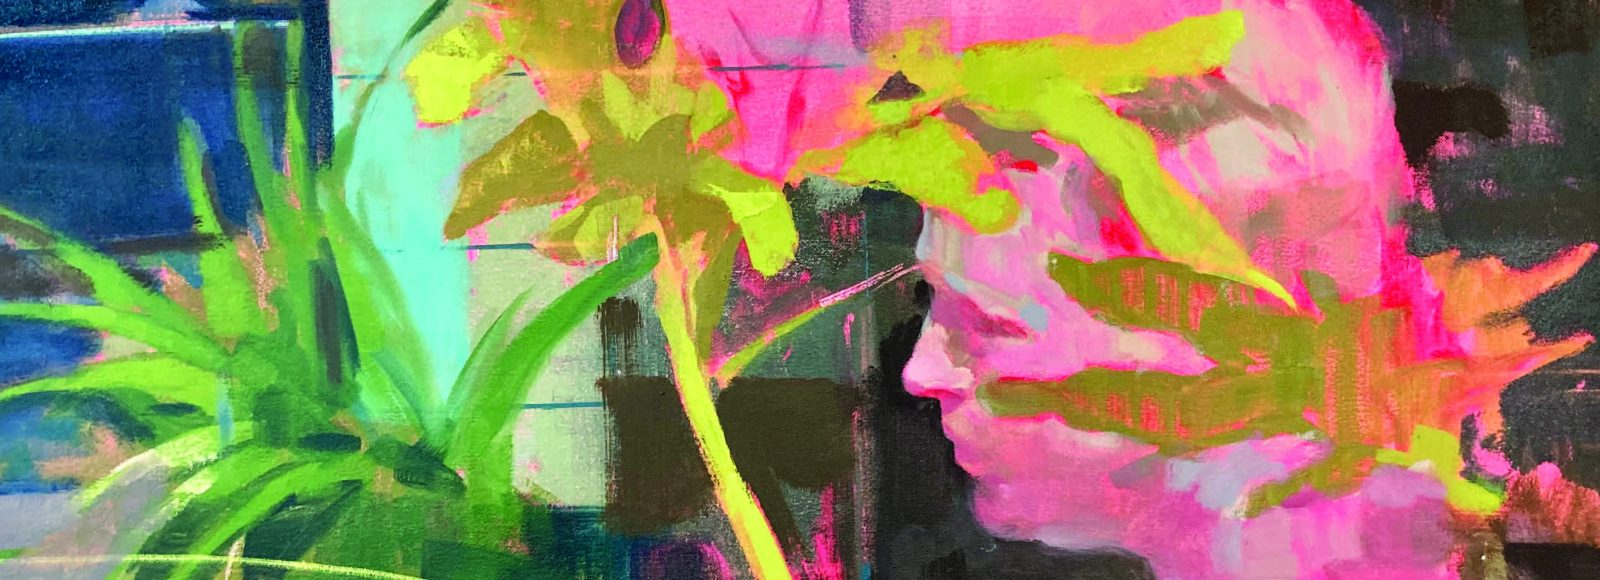 Colorful painting with bright pink face, tropical green plants